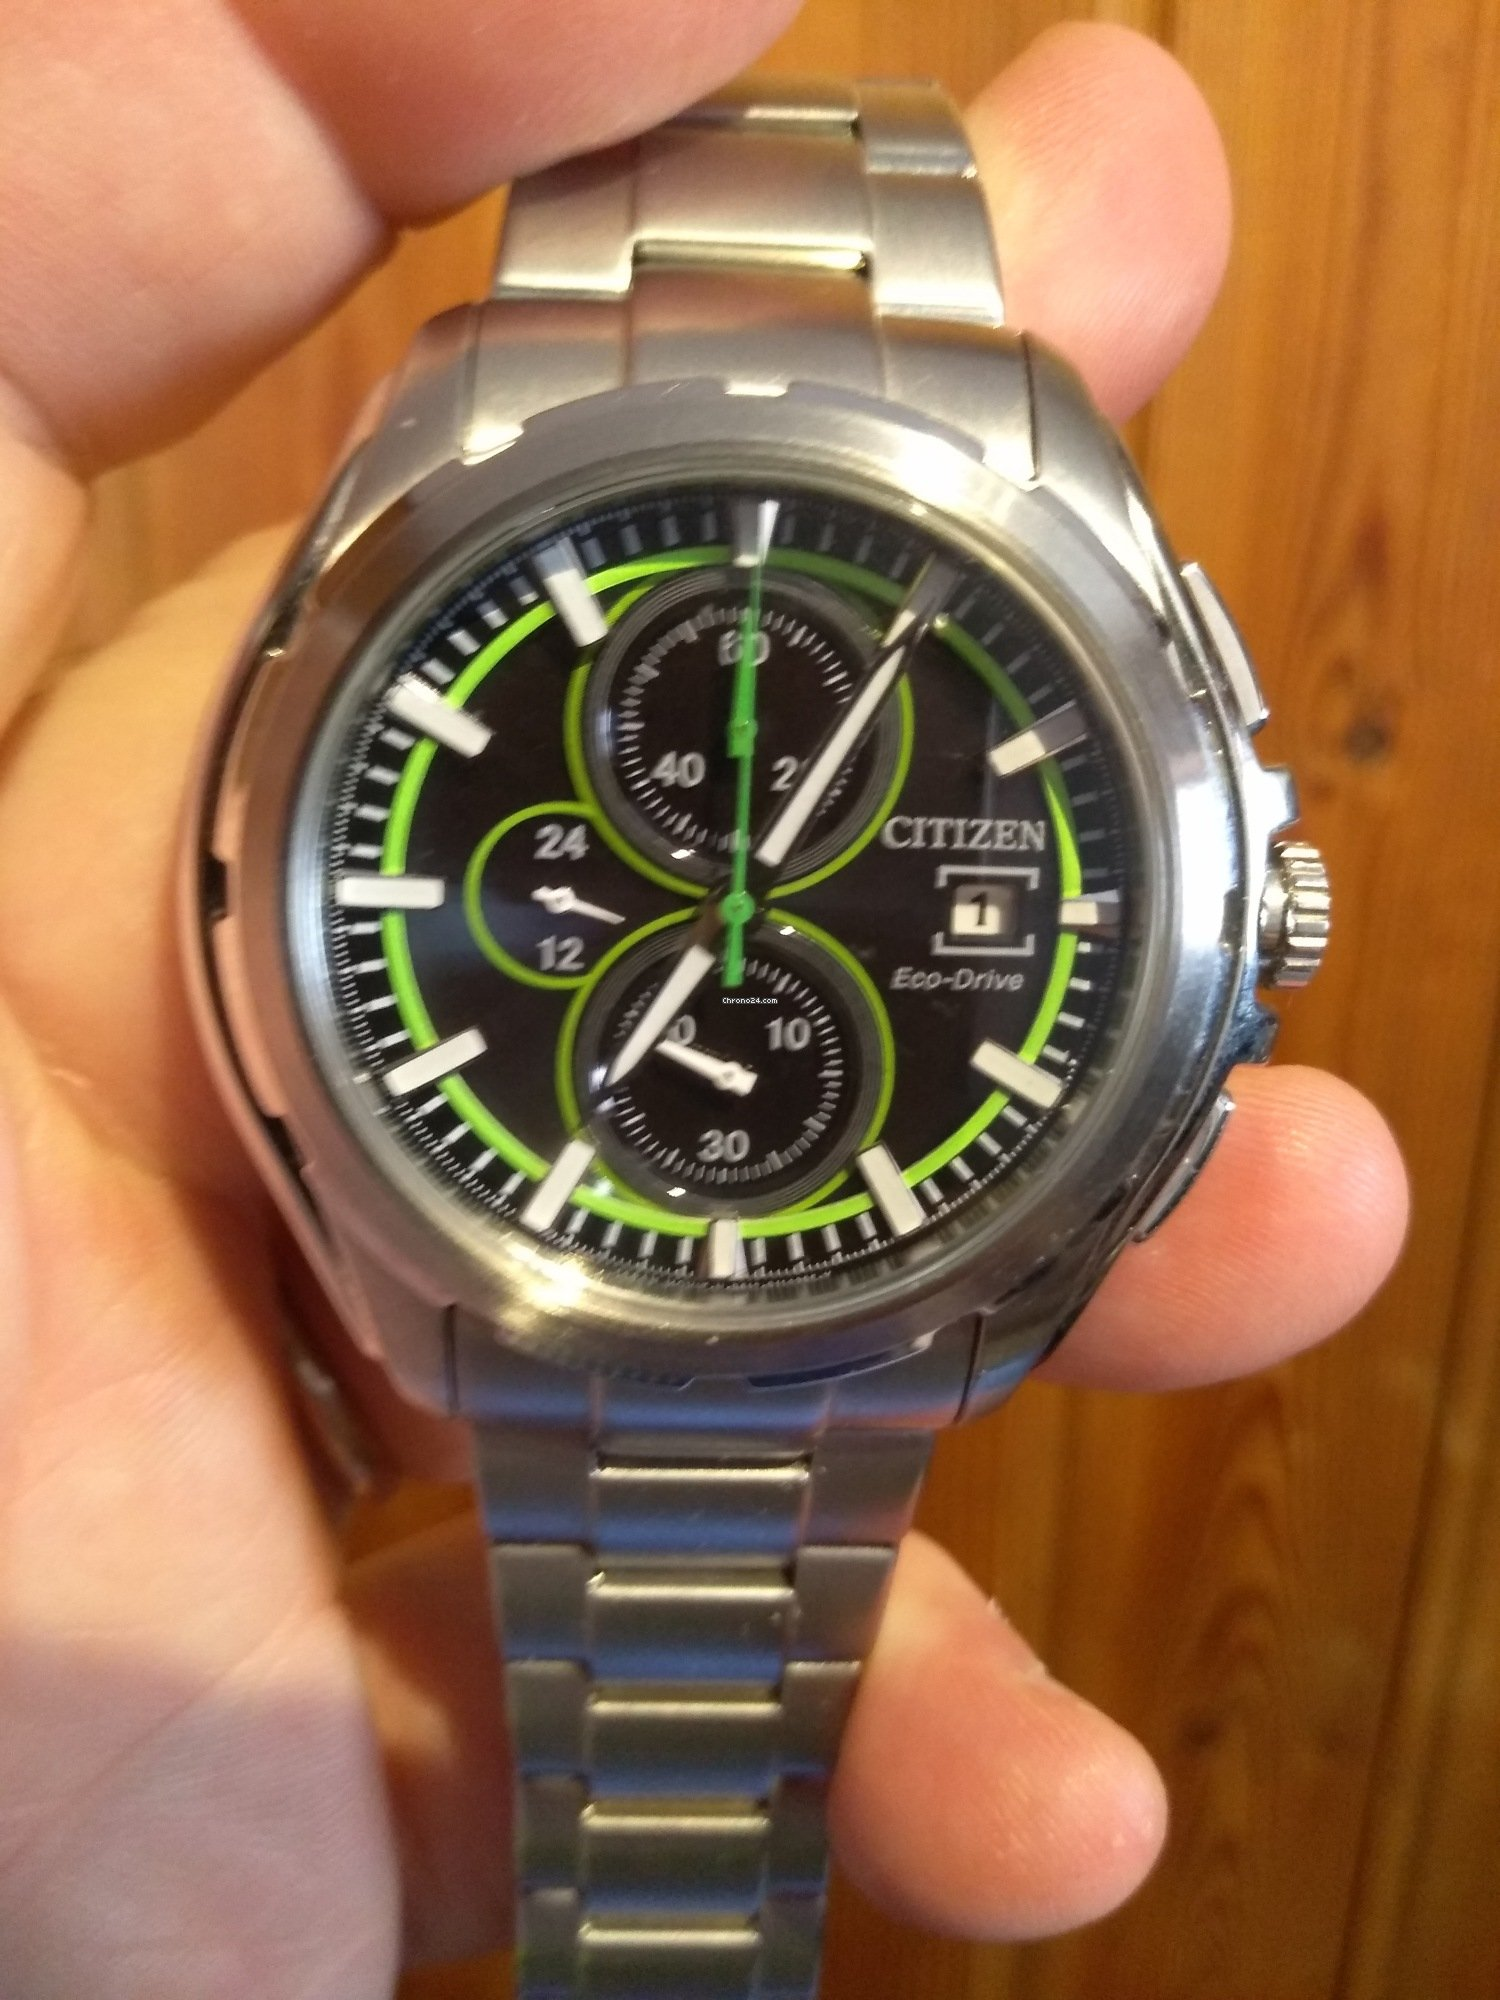 85df0cff171726 Citizen Eco-Drive Crono B612 for $109 for sale from a Private Seller ...